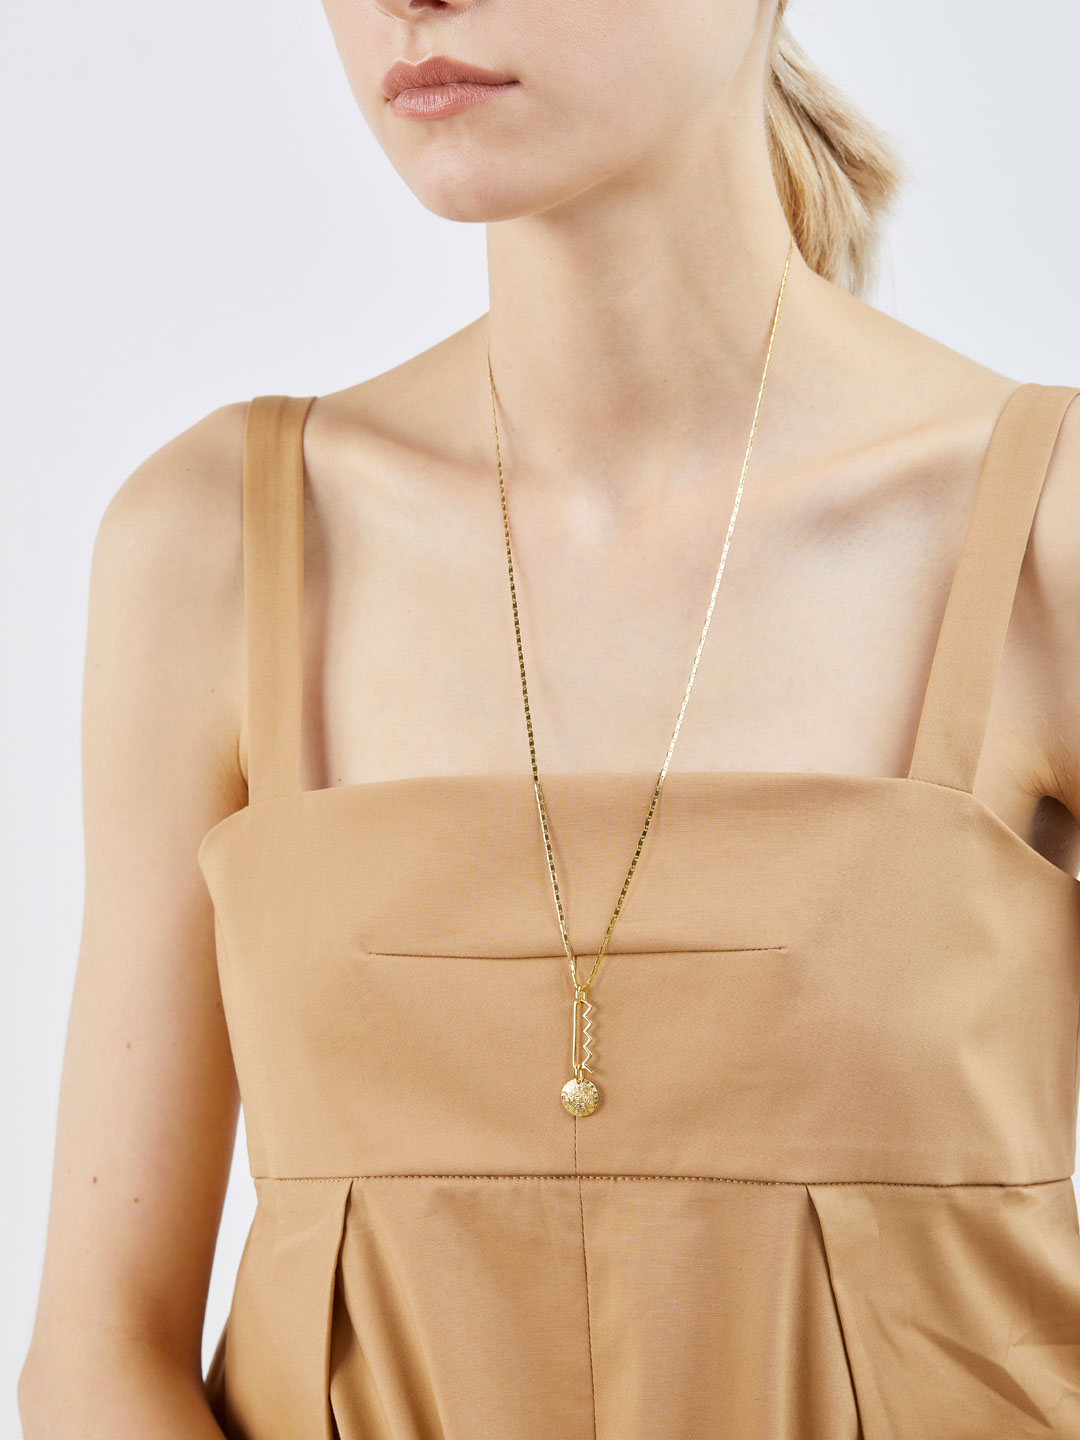 Giotto Necklace - Gold